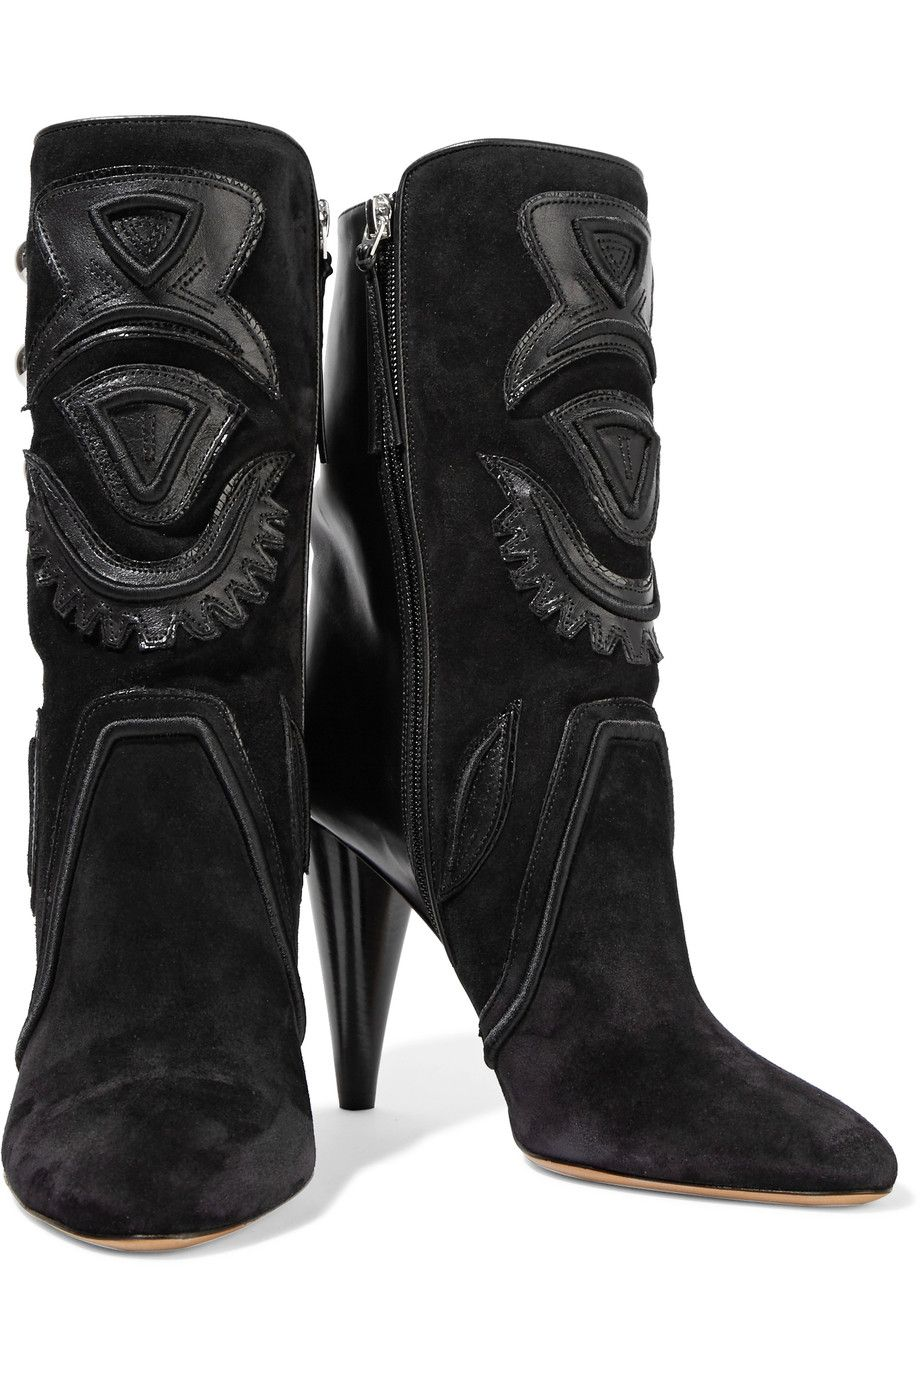 ab6c99a8adc0 Shop on-sale Isabel Marant Liv suede and leather ankle boots. Browse other  discount designer Boots & more on The Most Fashionable Fashion Outlet, ...